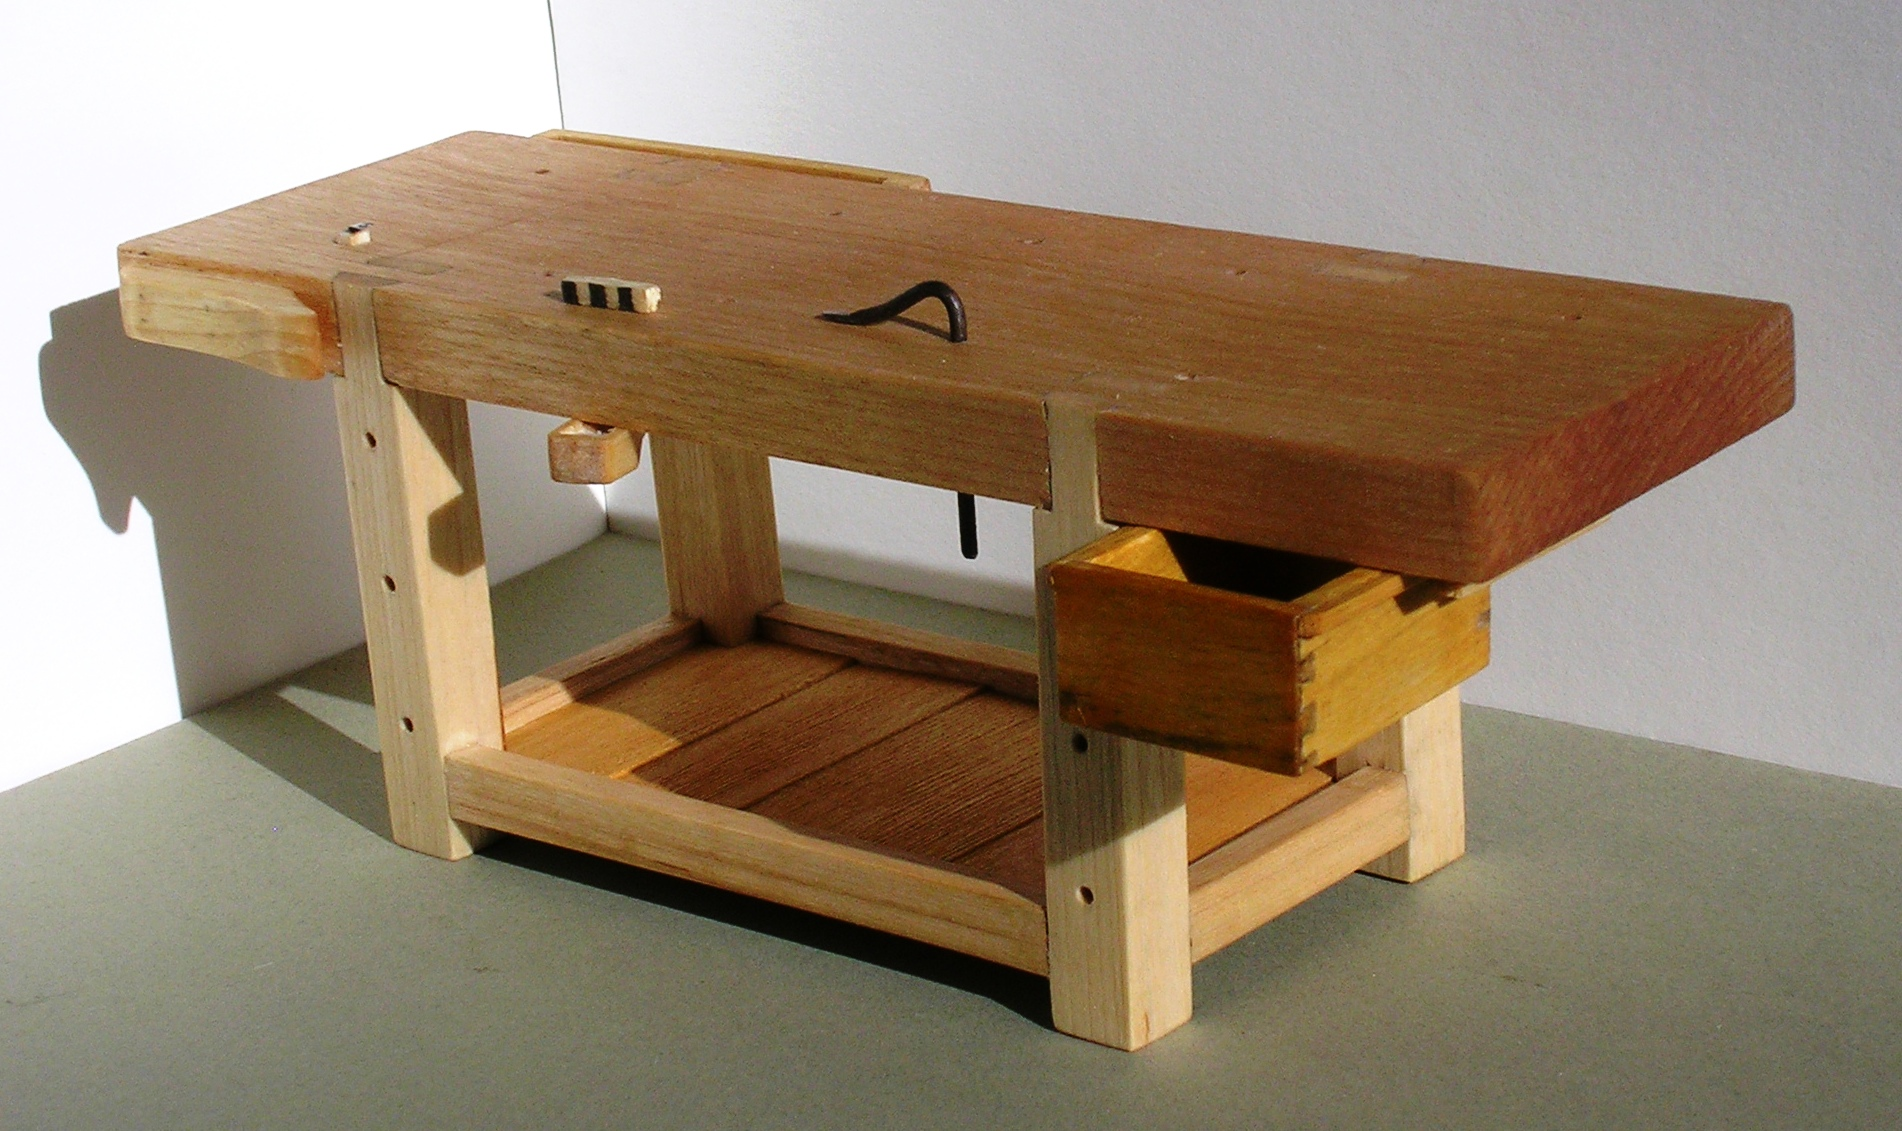 Work Bench Legs for Best Your Workspace Furniture Design: Work Bench Leg | Work Bench Legs | Workbench Drawer Kit